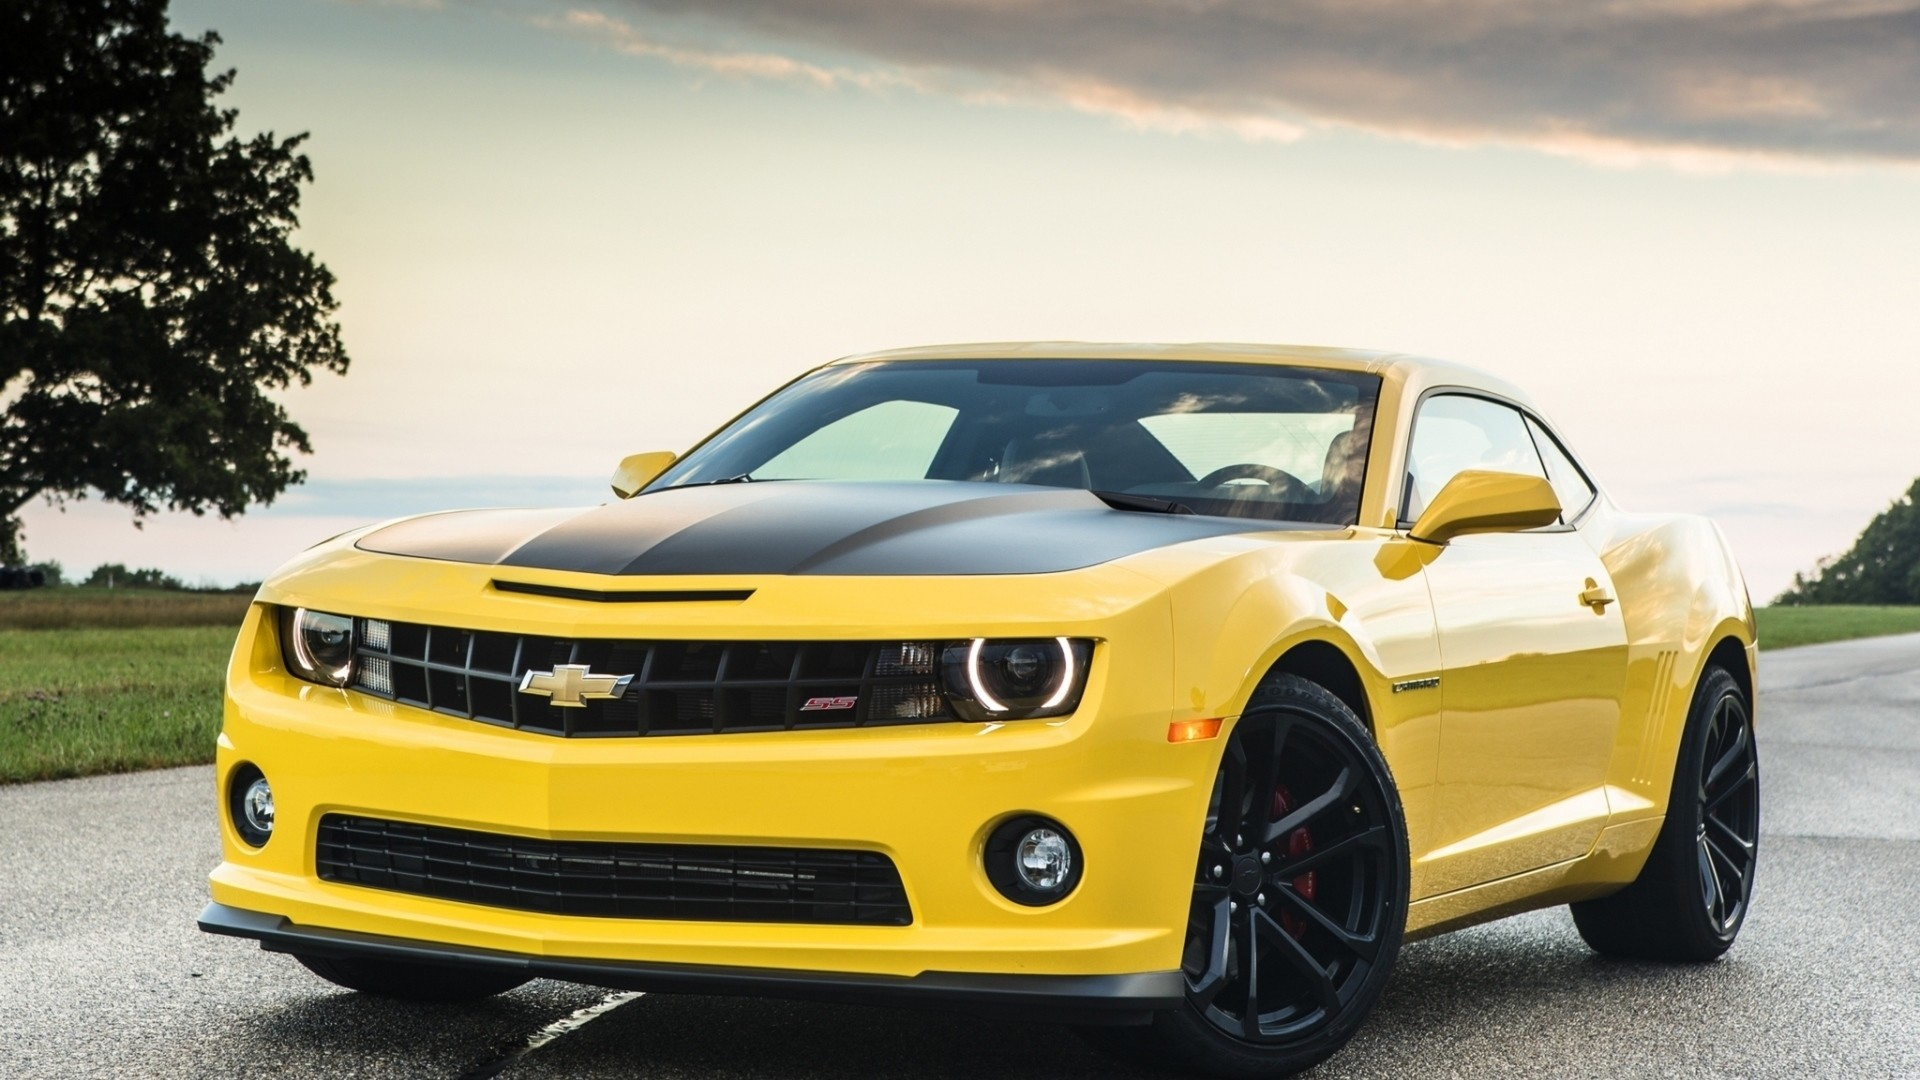 Wallpaper chevrolet, camaro, 1le, yellow, front, muscle car, road